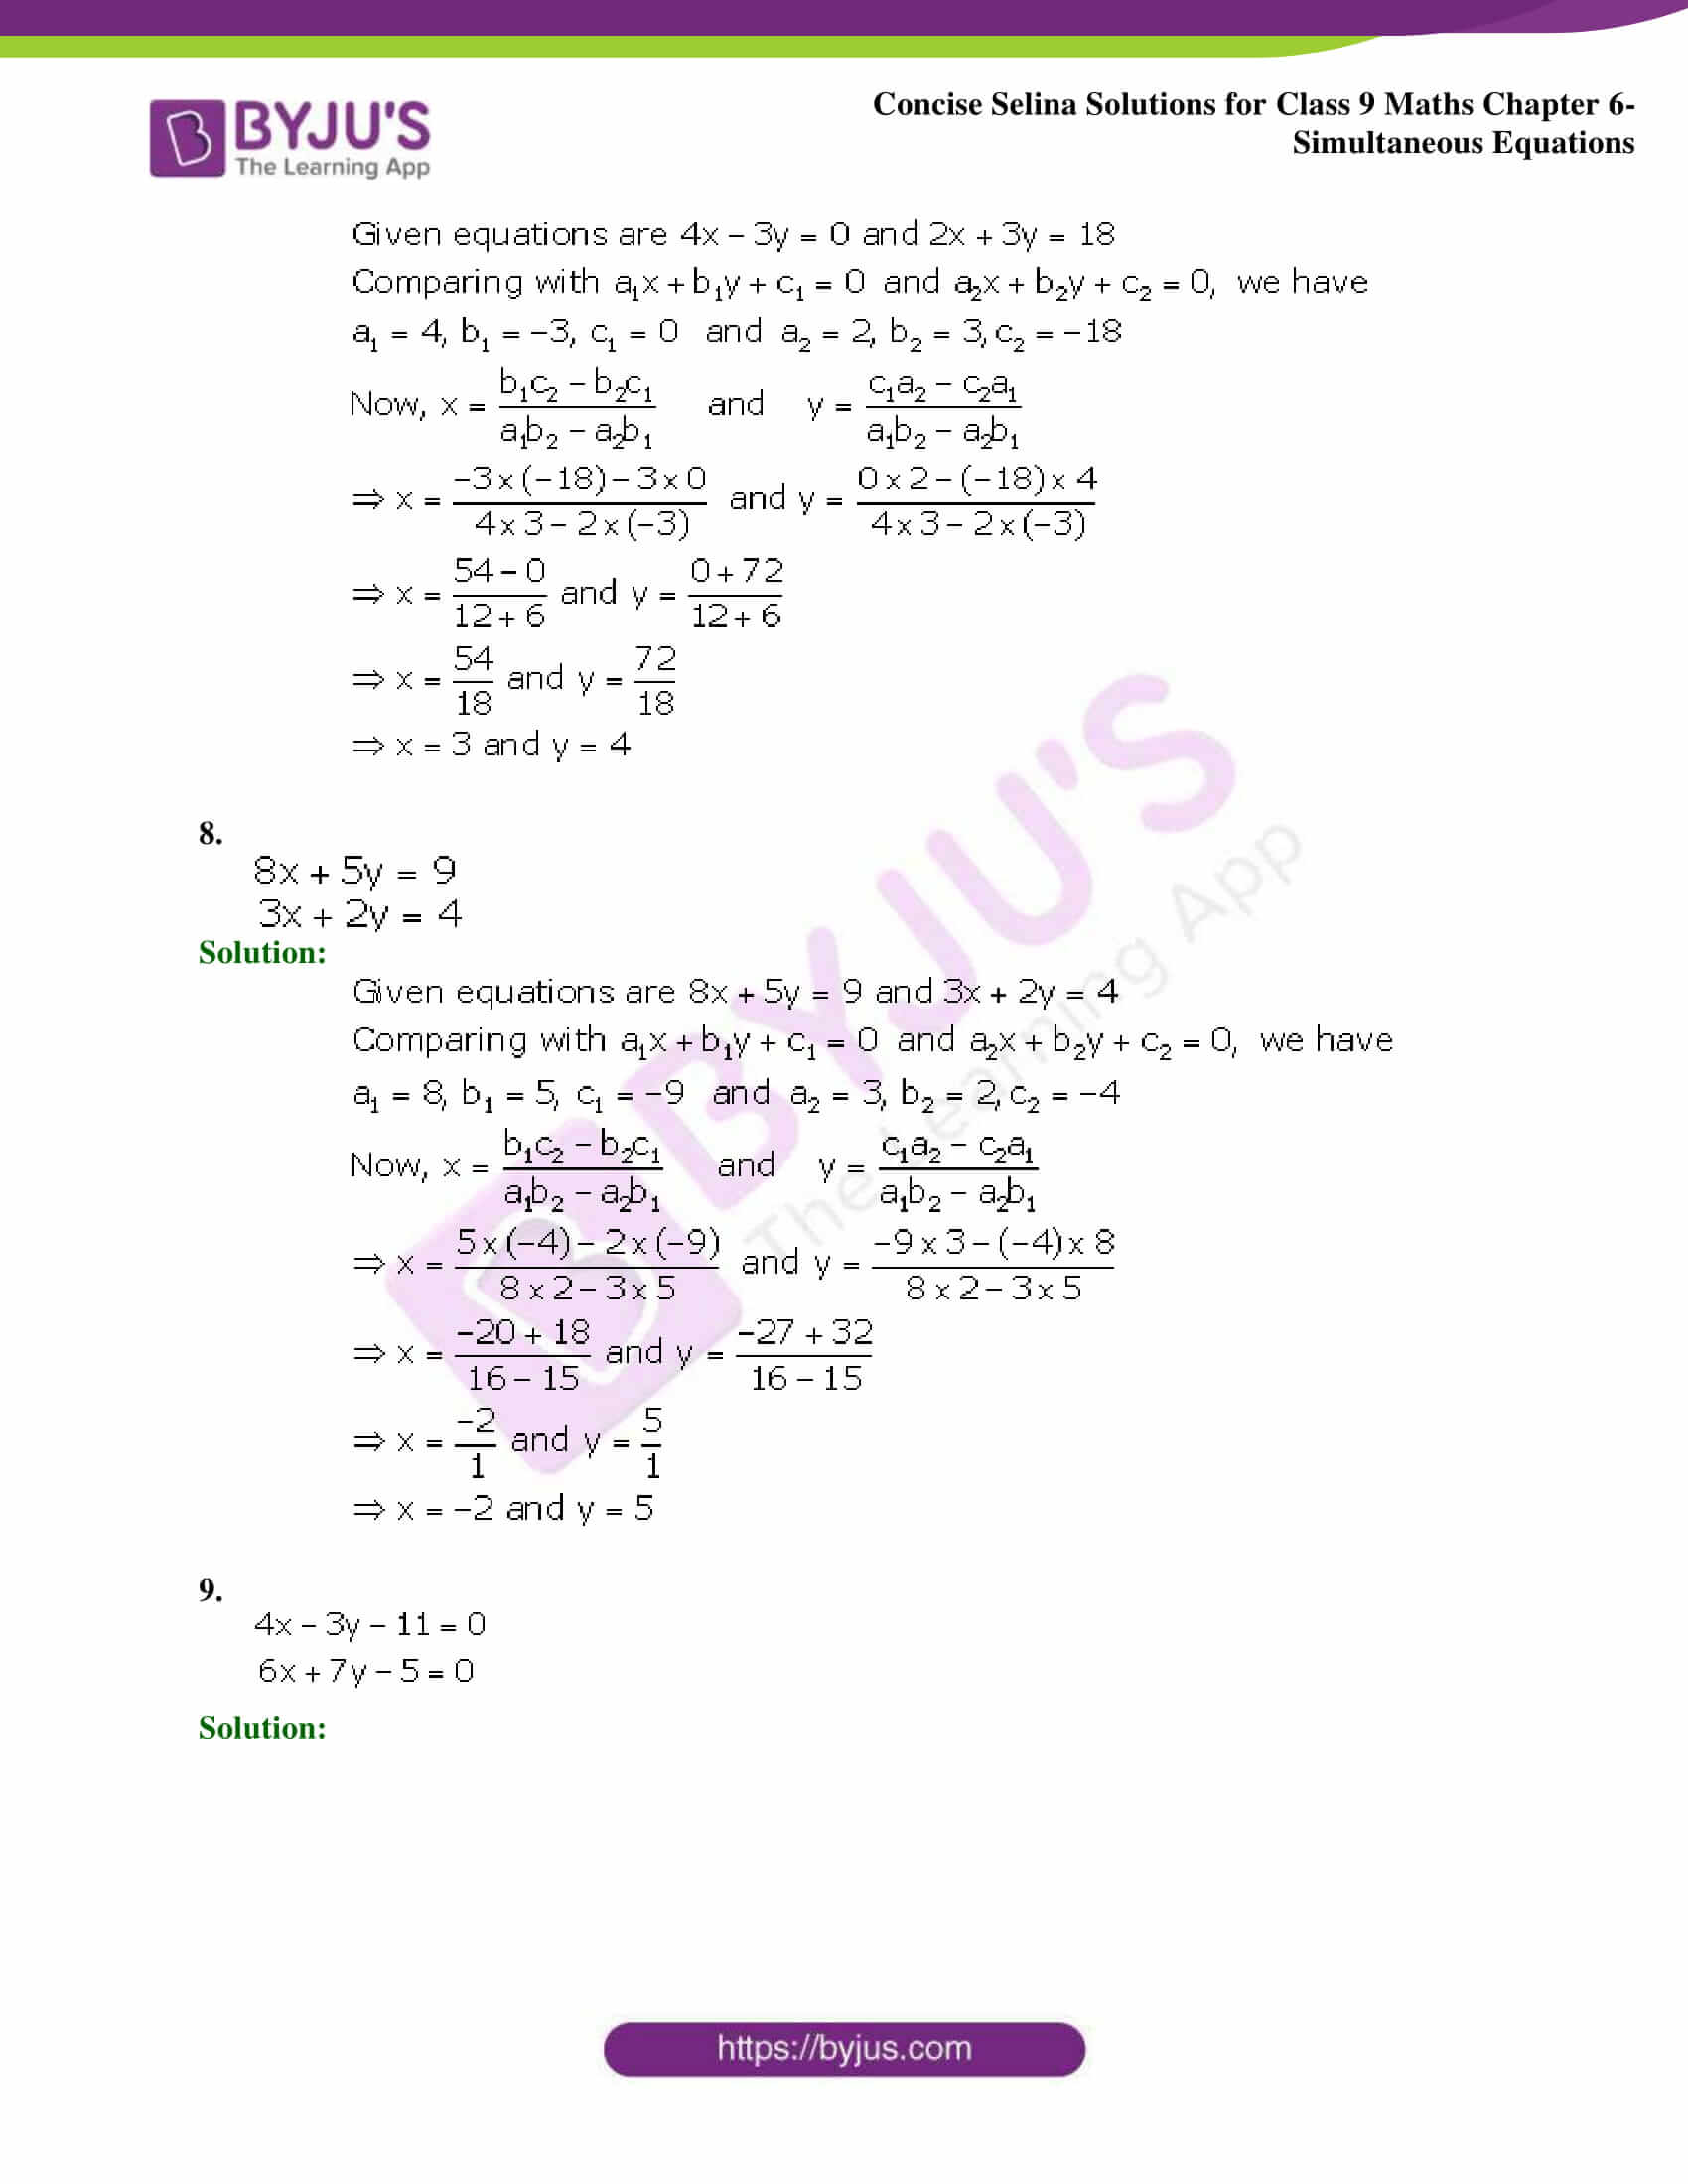 Selina Solutions Class 9 Maths Chapter 6 Simultaneous Equations part 24